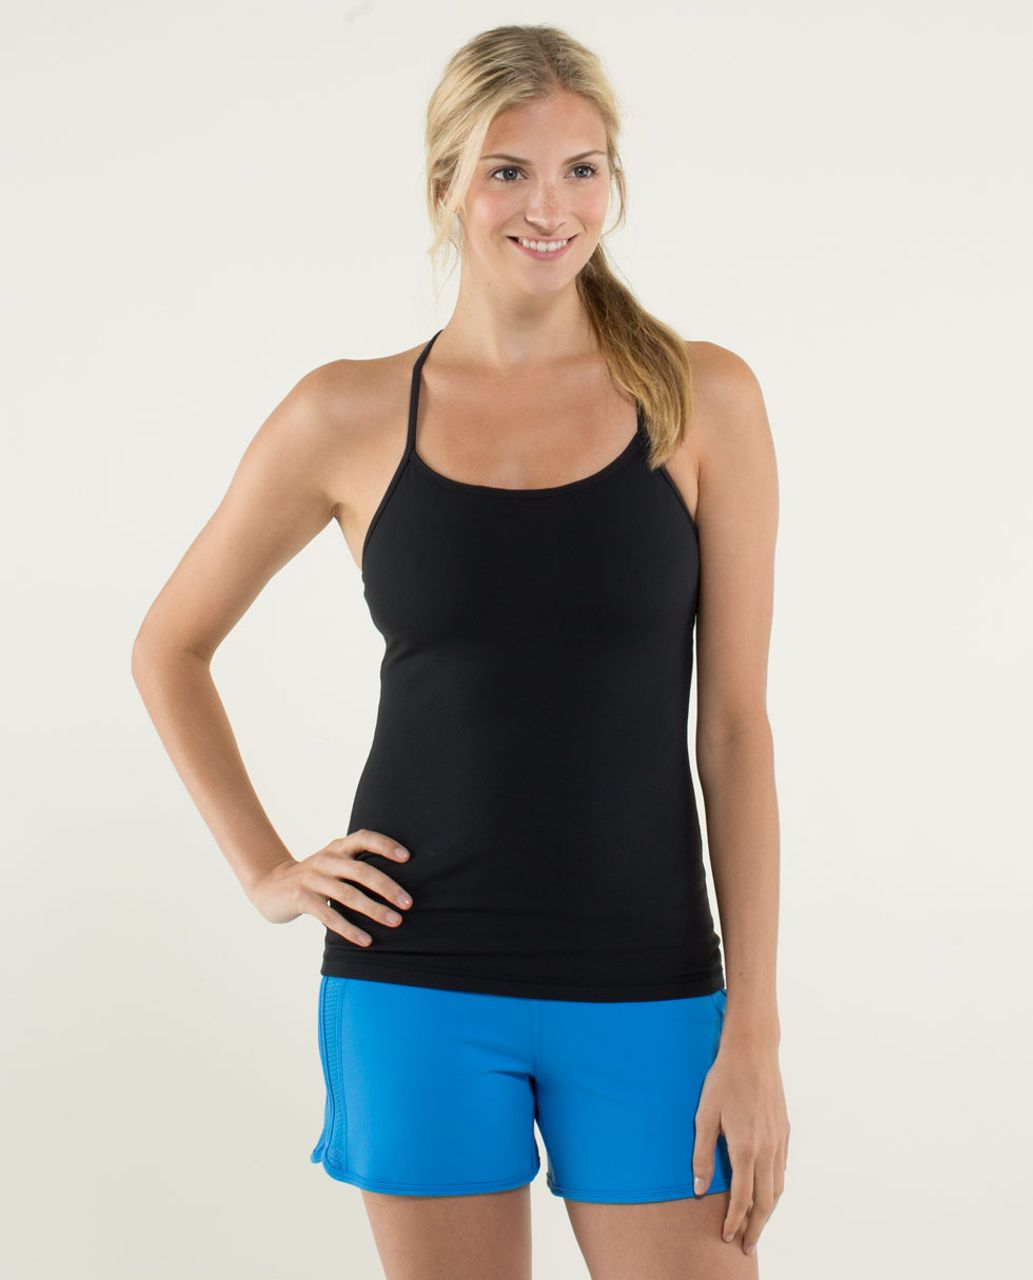 Lululemon Power Y Tank - Black (First Release)